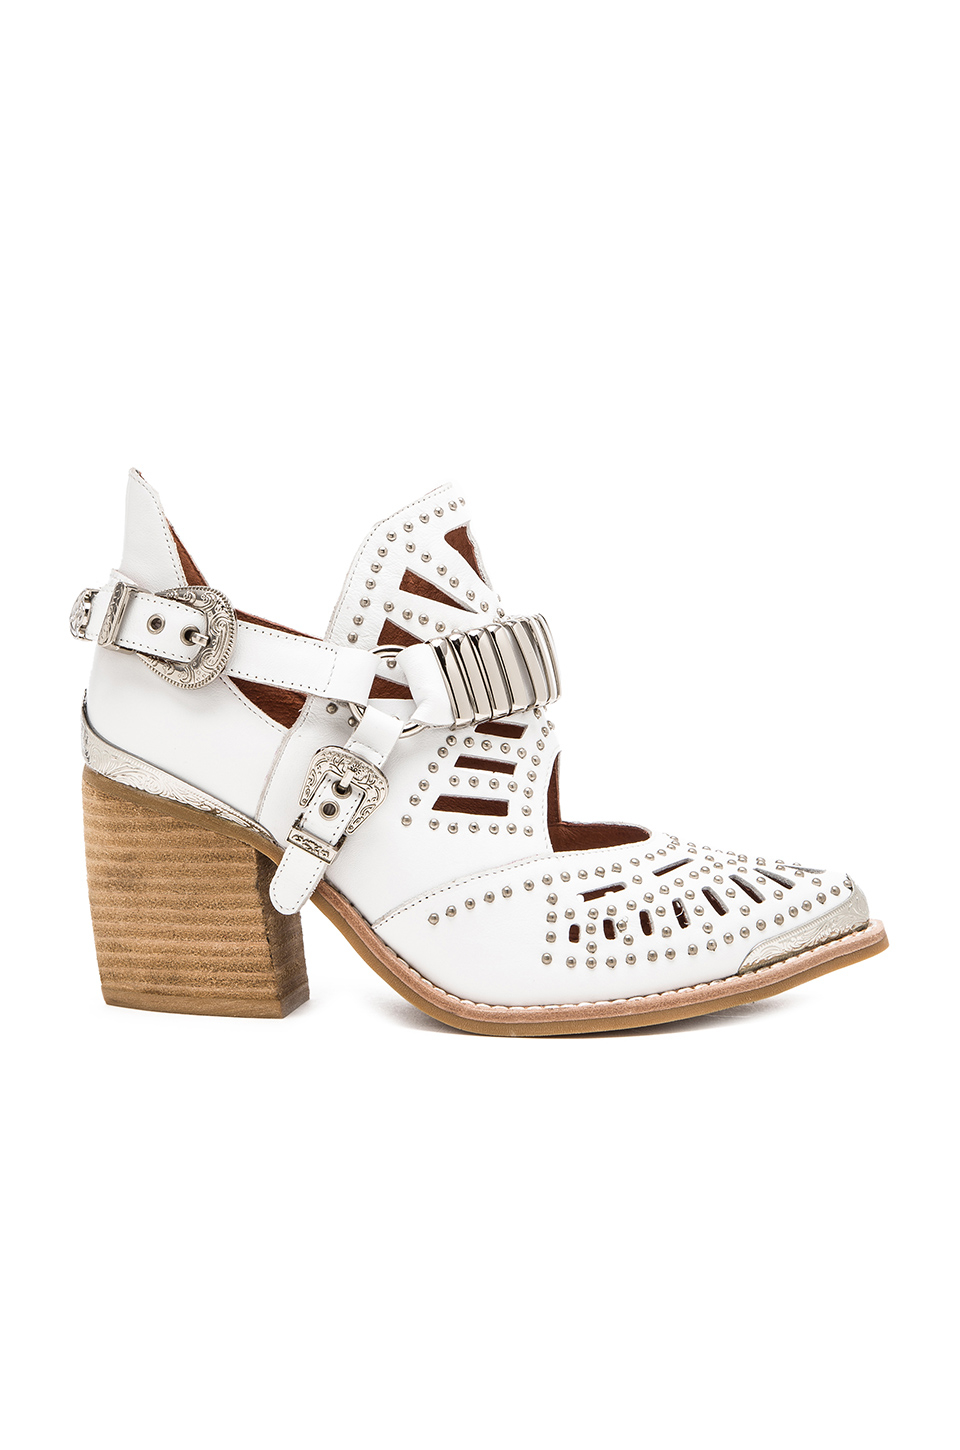 12a836d8c12 Lyst - Jeffrey Campbell Calhoun Leather Boots in White